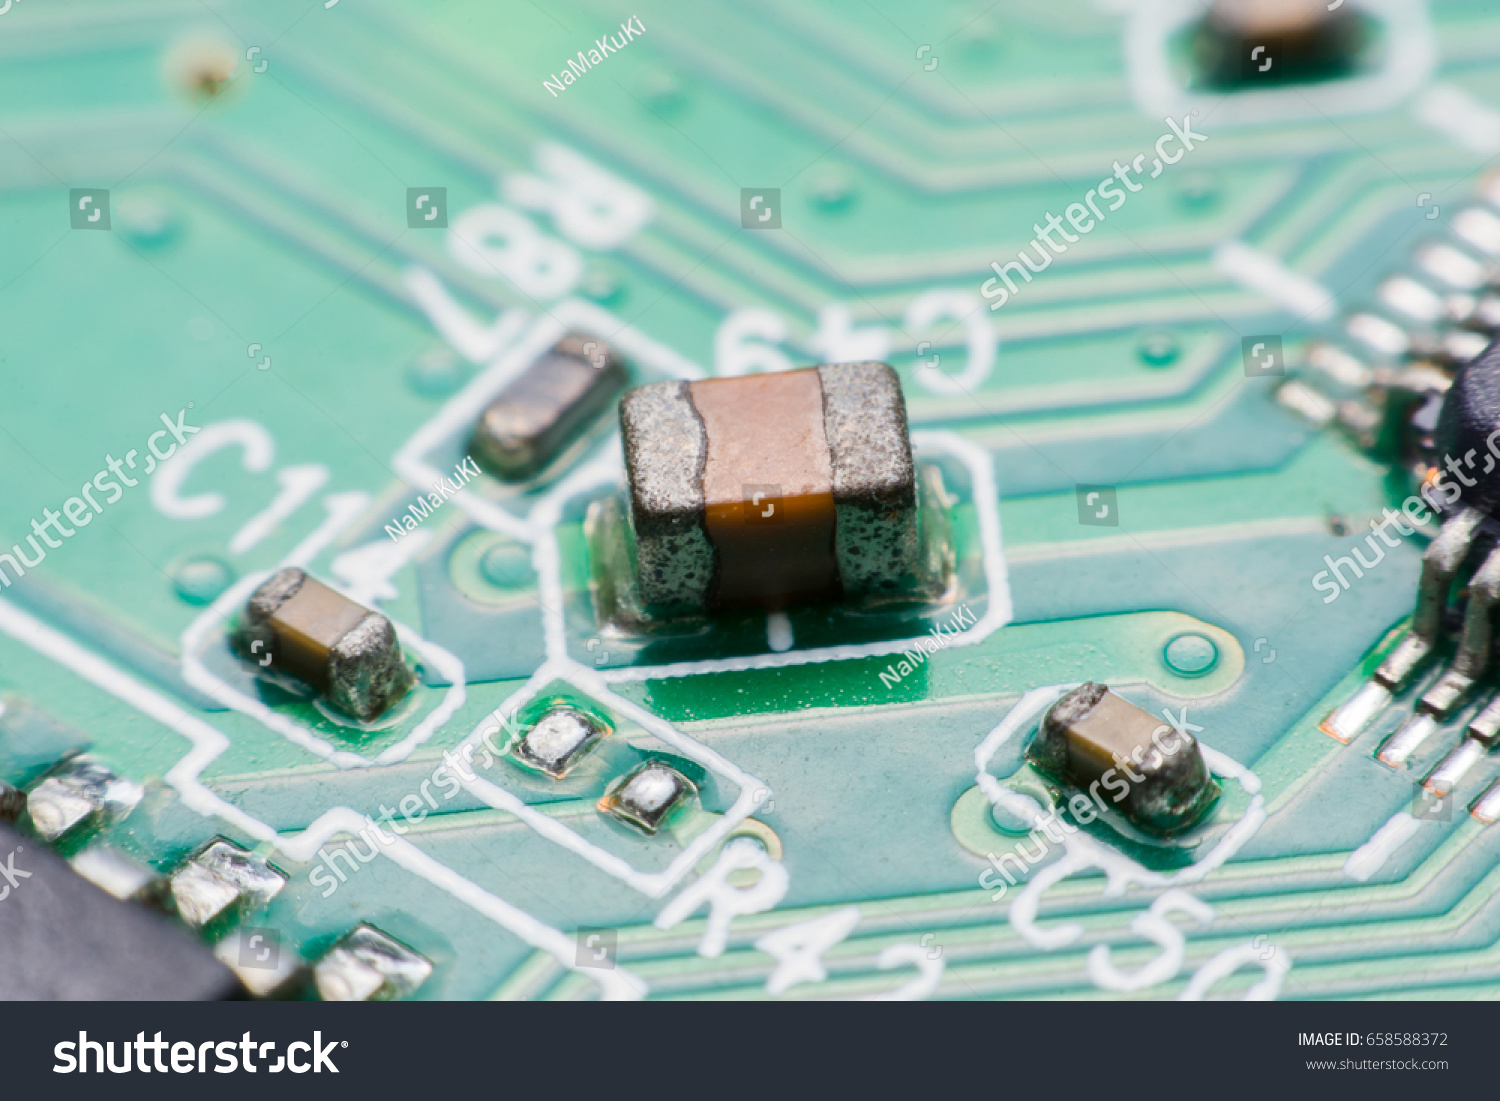 Closeup Electronic Hardware Resistor Condensers Assembly Stock Photo Circuit Board Of A Cell Phone Royalty Free Image And On The